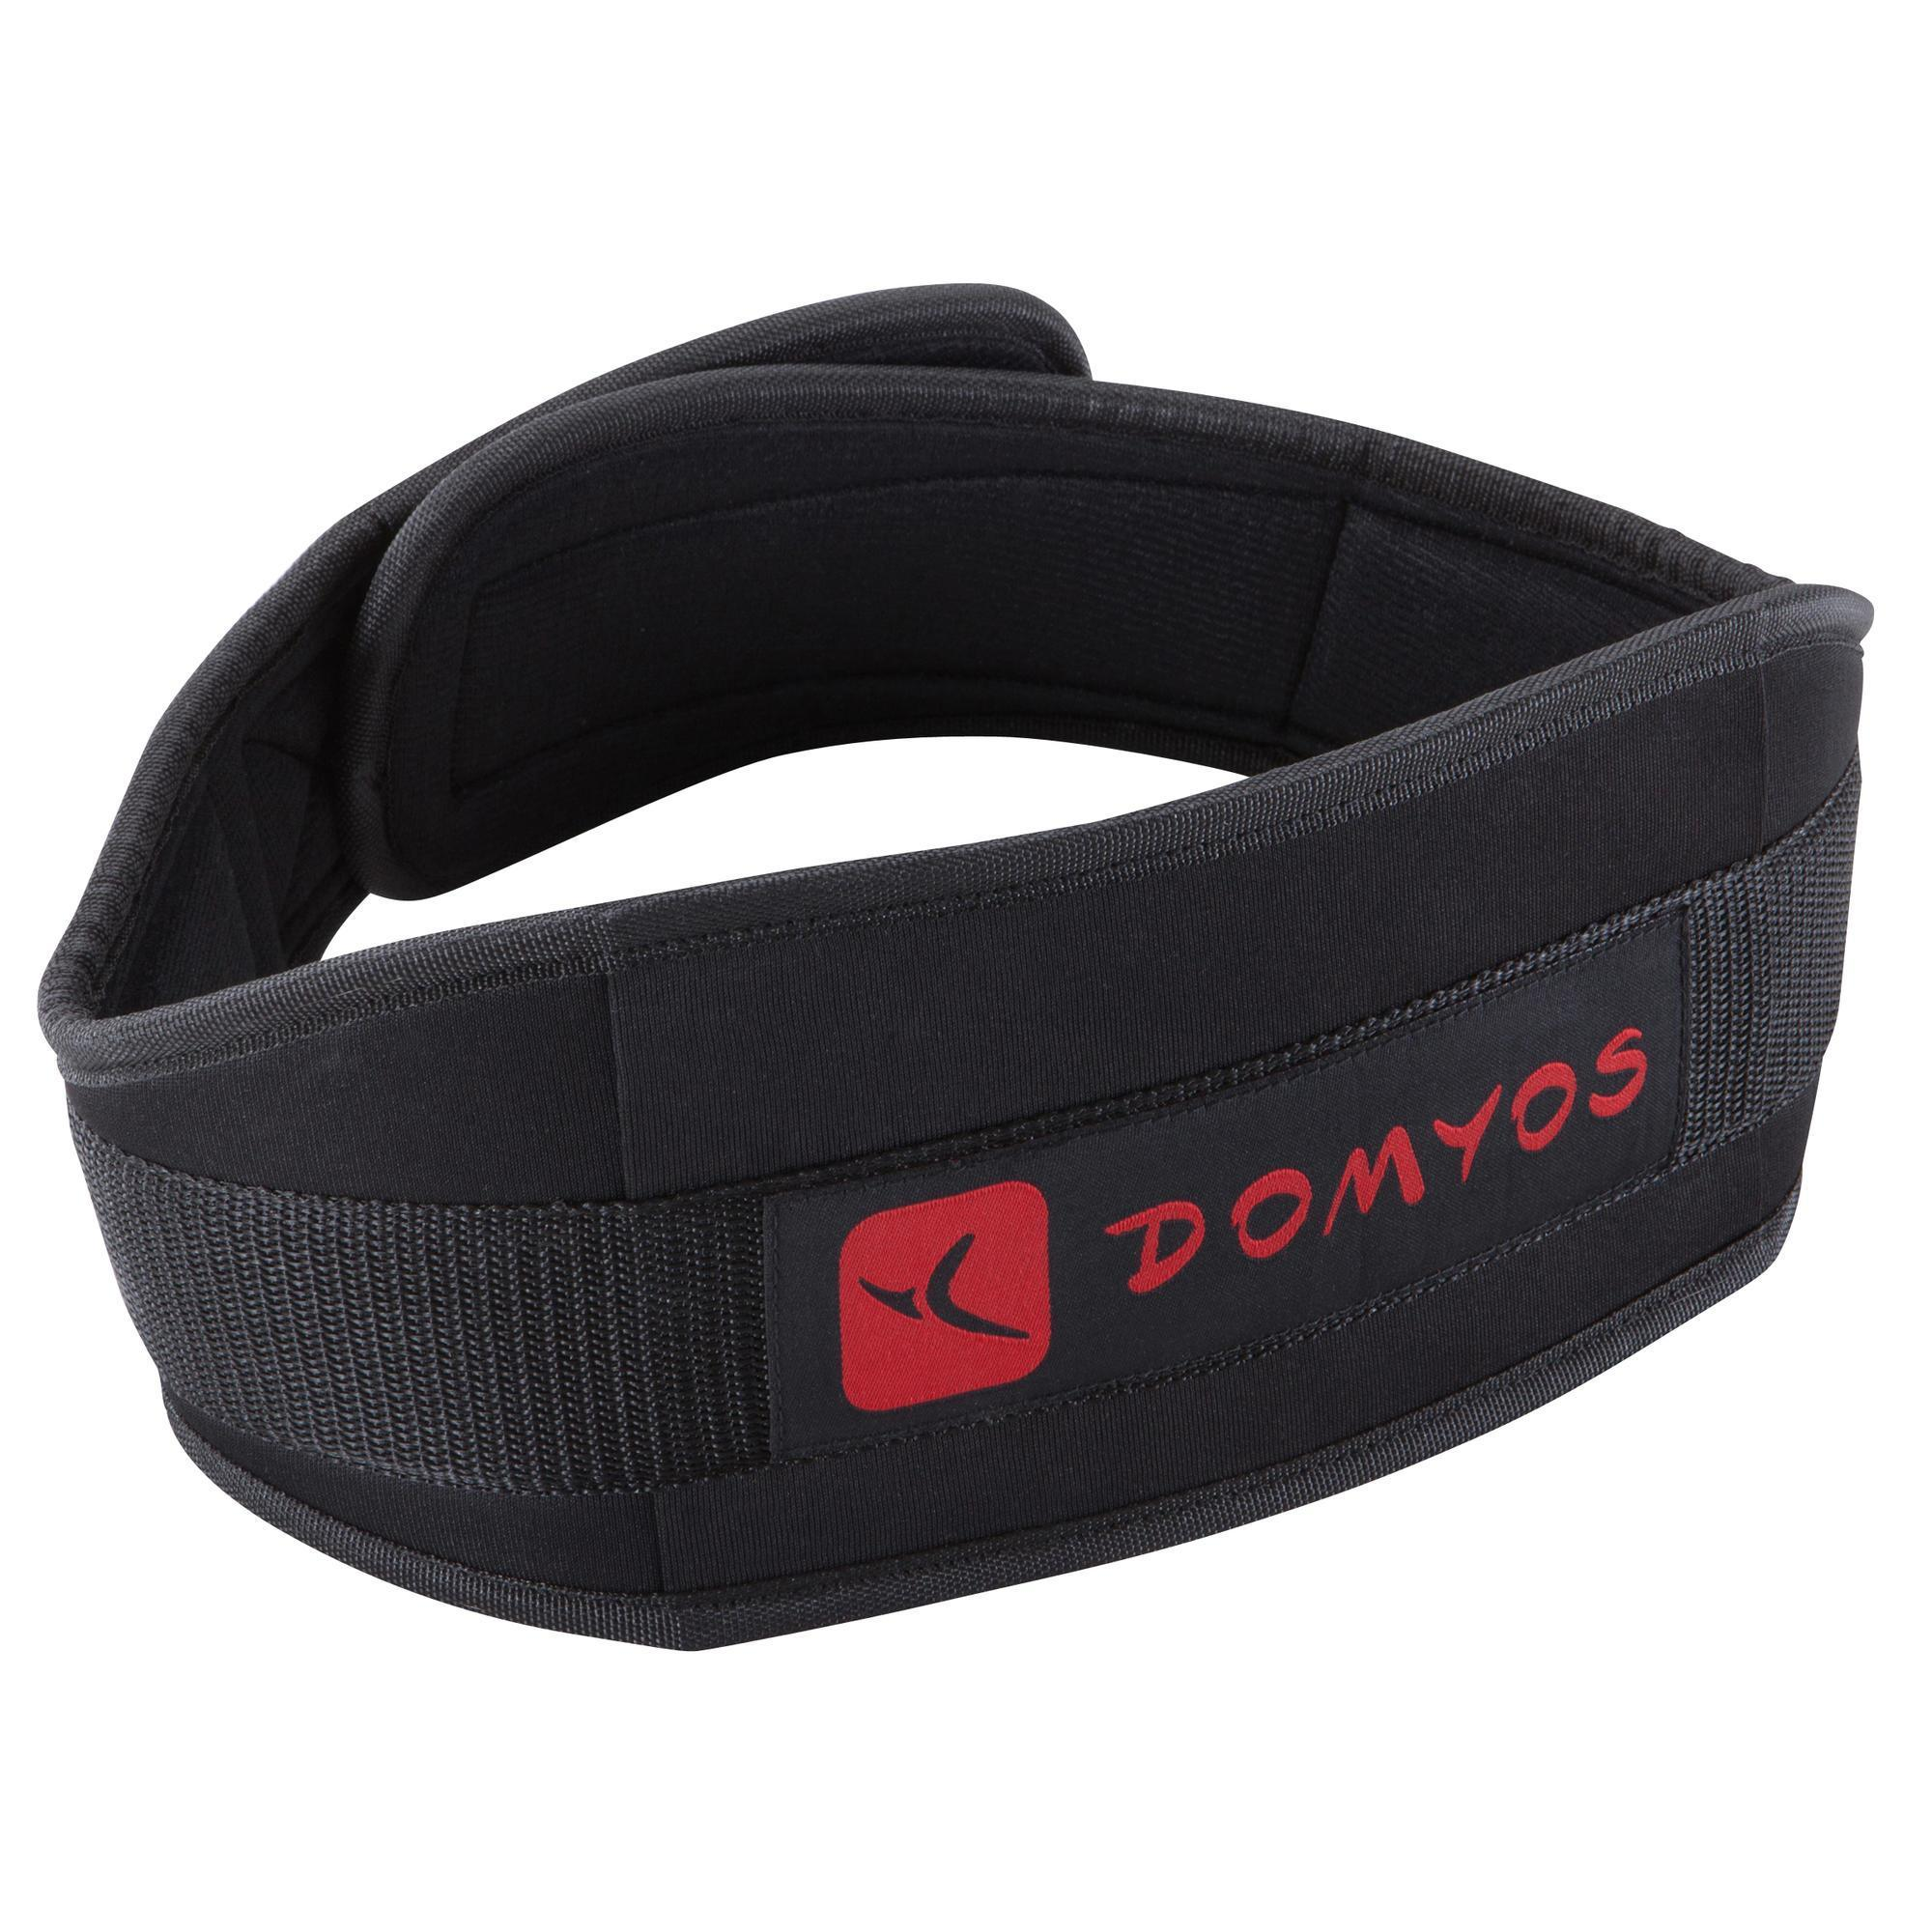 Ceinture lombaire musculation polyester domyos by decathlon for Ceinture de musculation